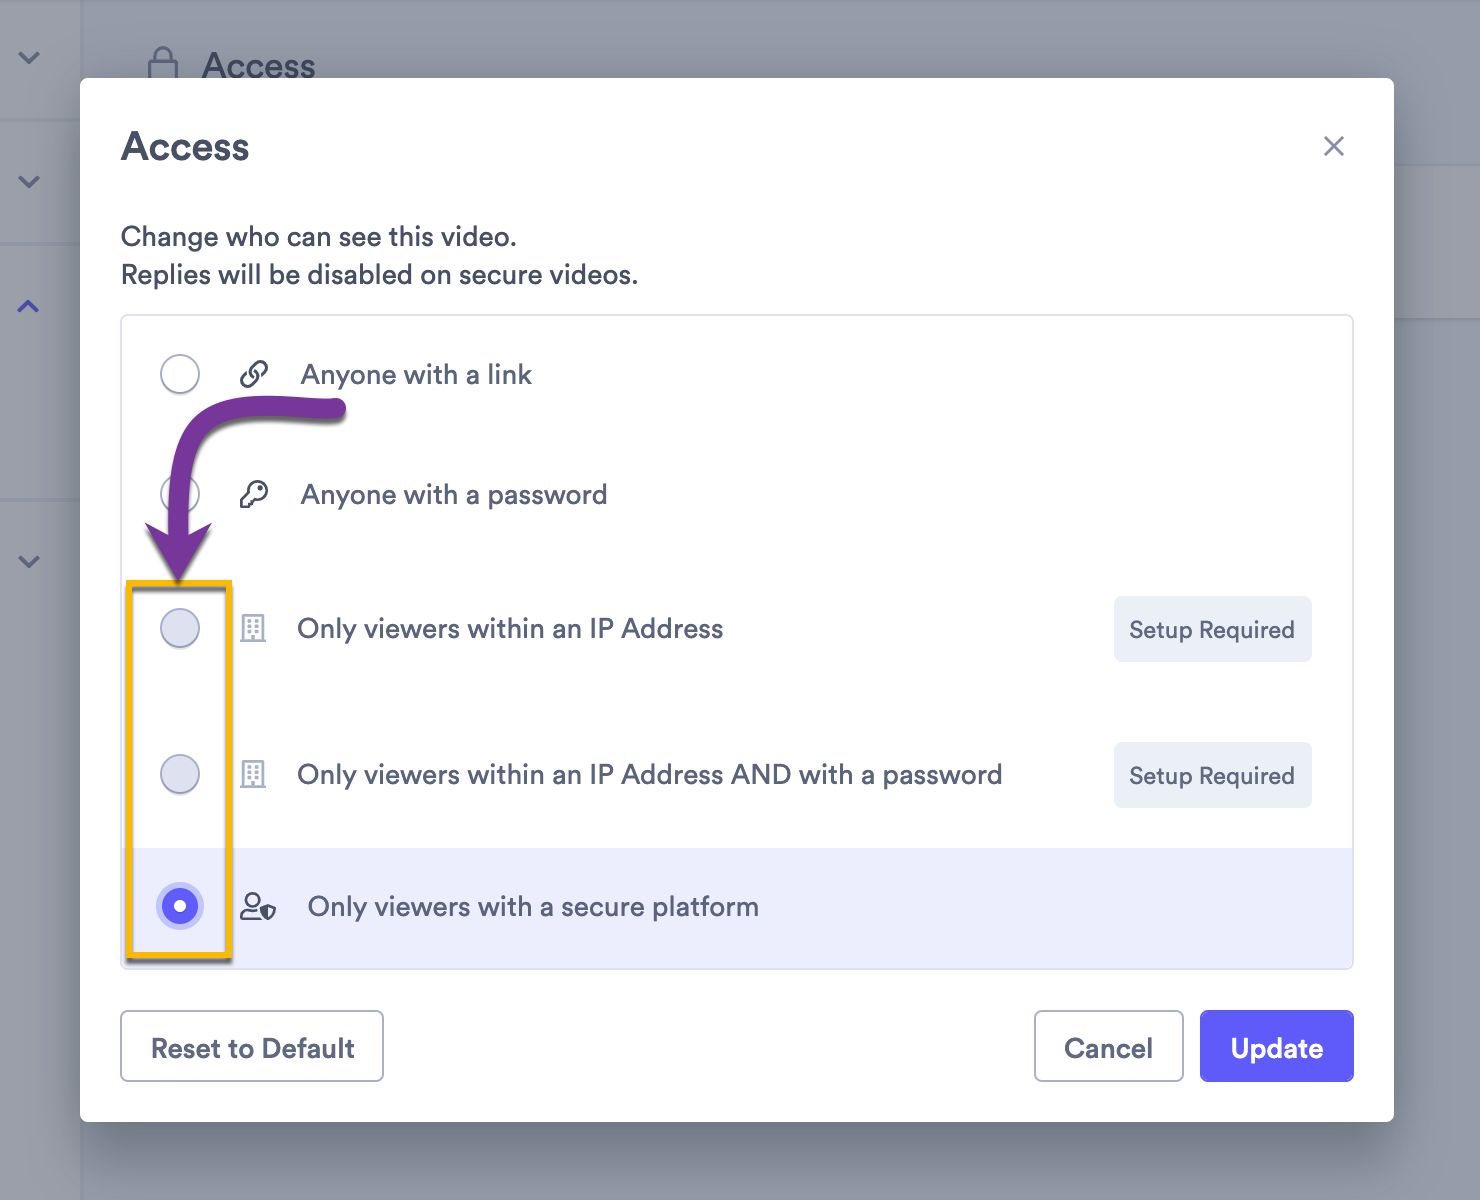 Selecting advanced access options to restrict your video to viewers based on IP address or to a secure platform